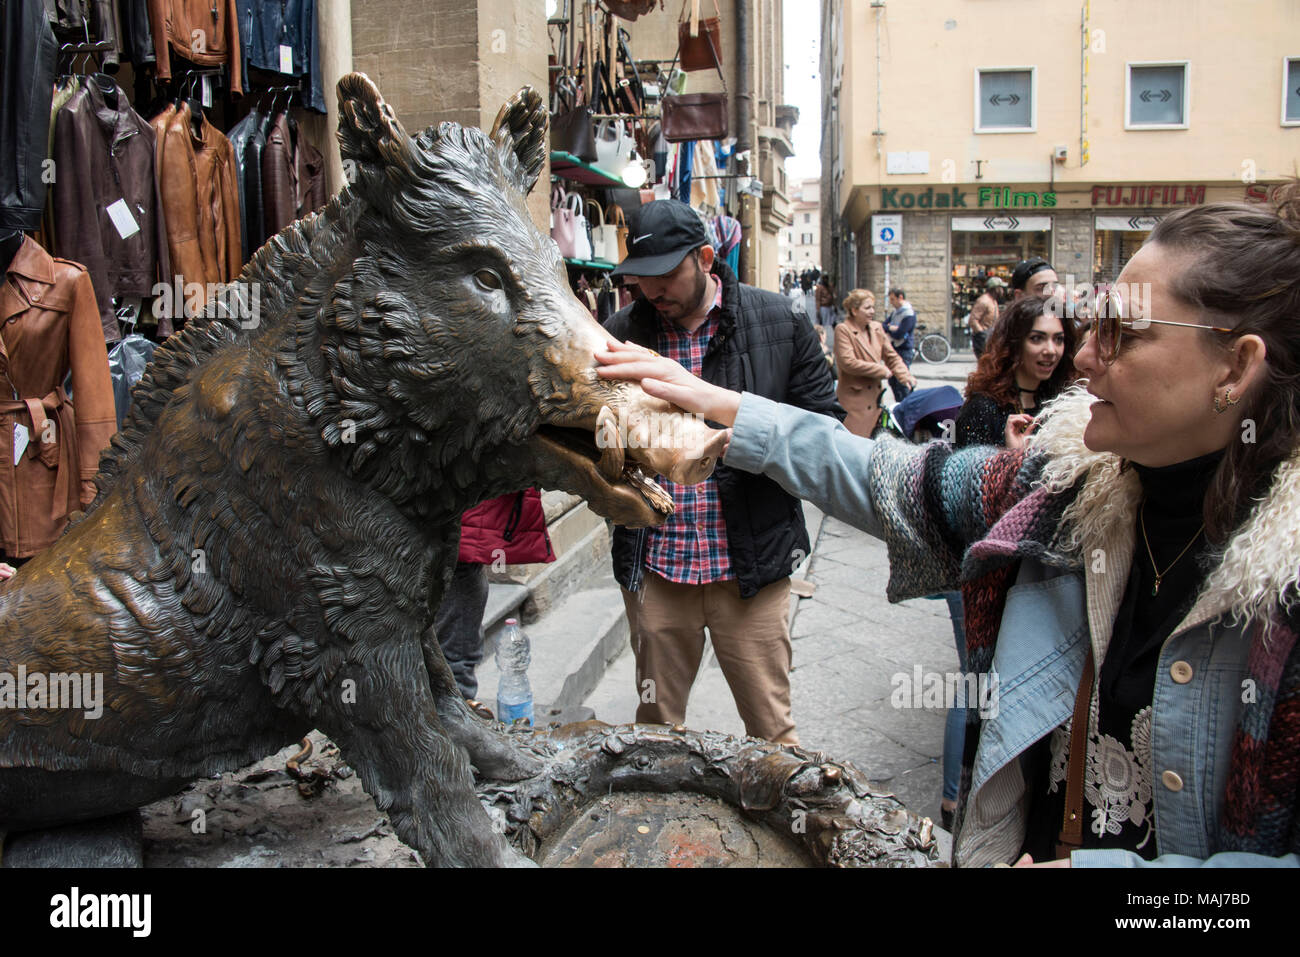 Bronze Statue of a boar in Florence, Italy. - Stock Image